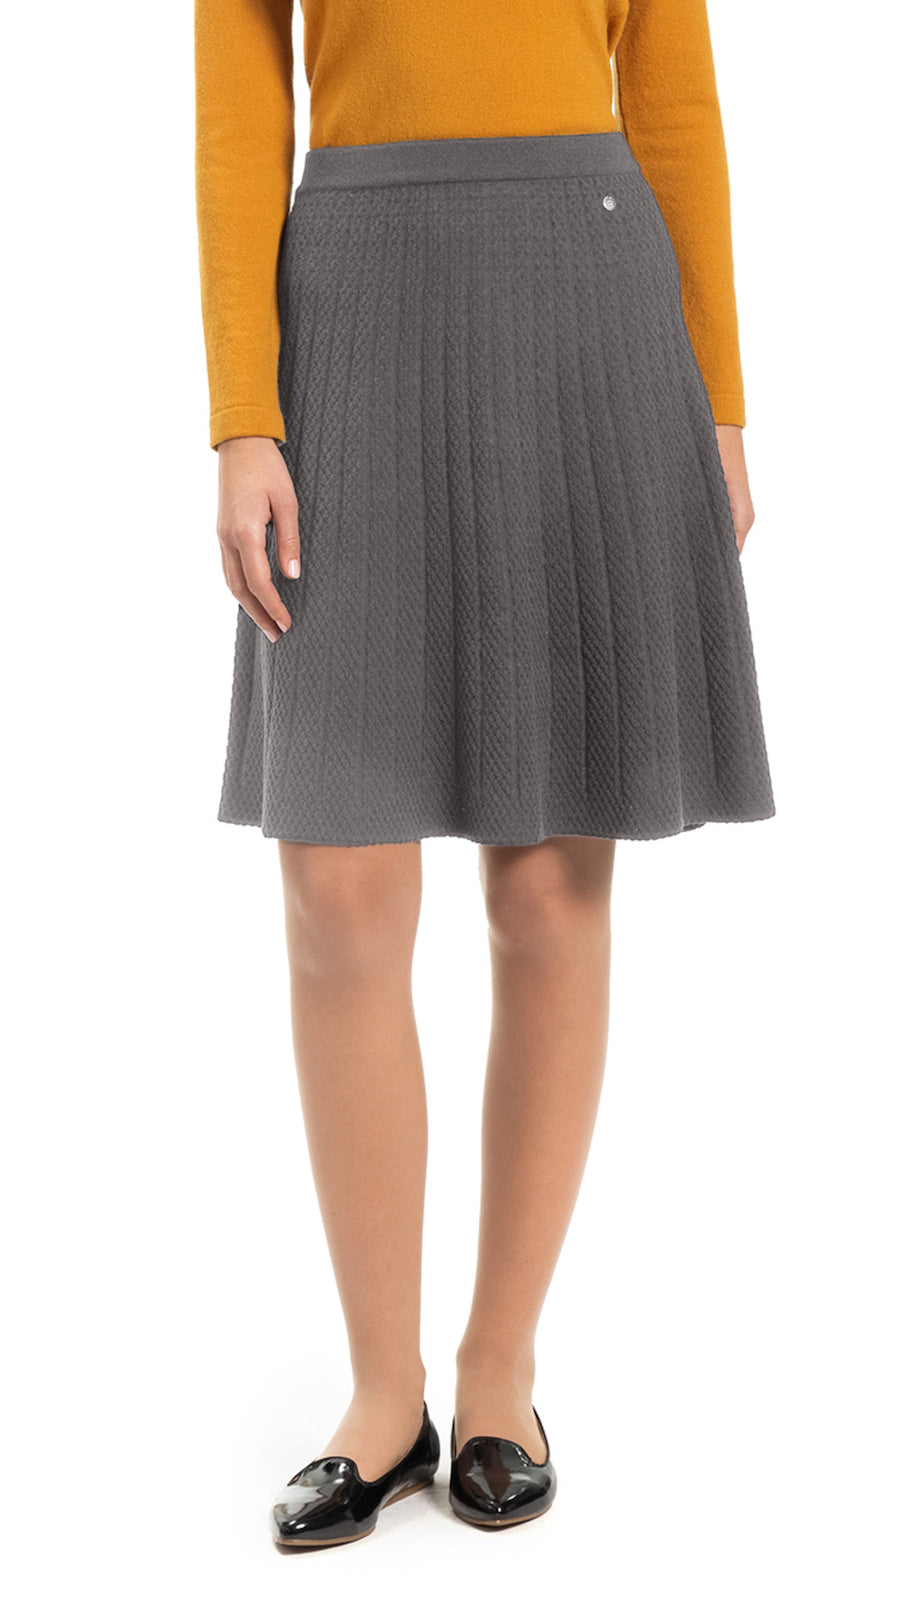 CONTEMPO Adeline Pattern-Knit Flare Skirt, Taupe